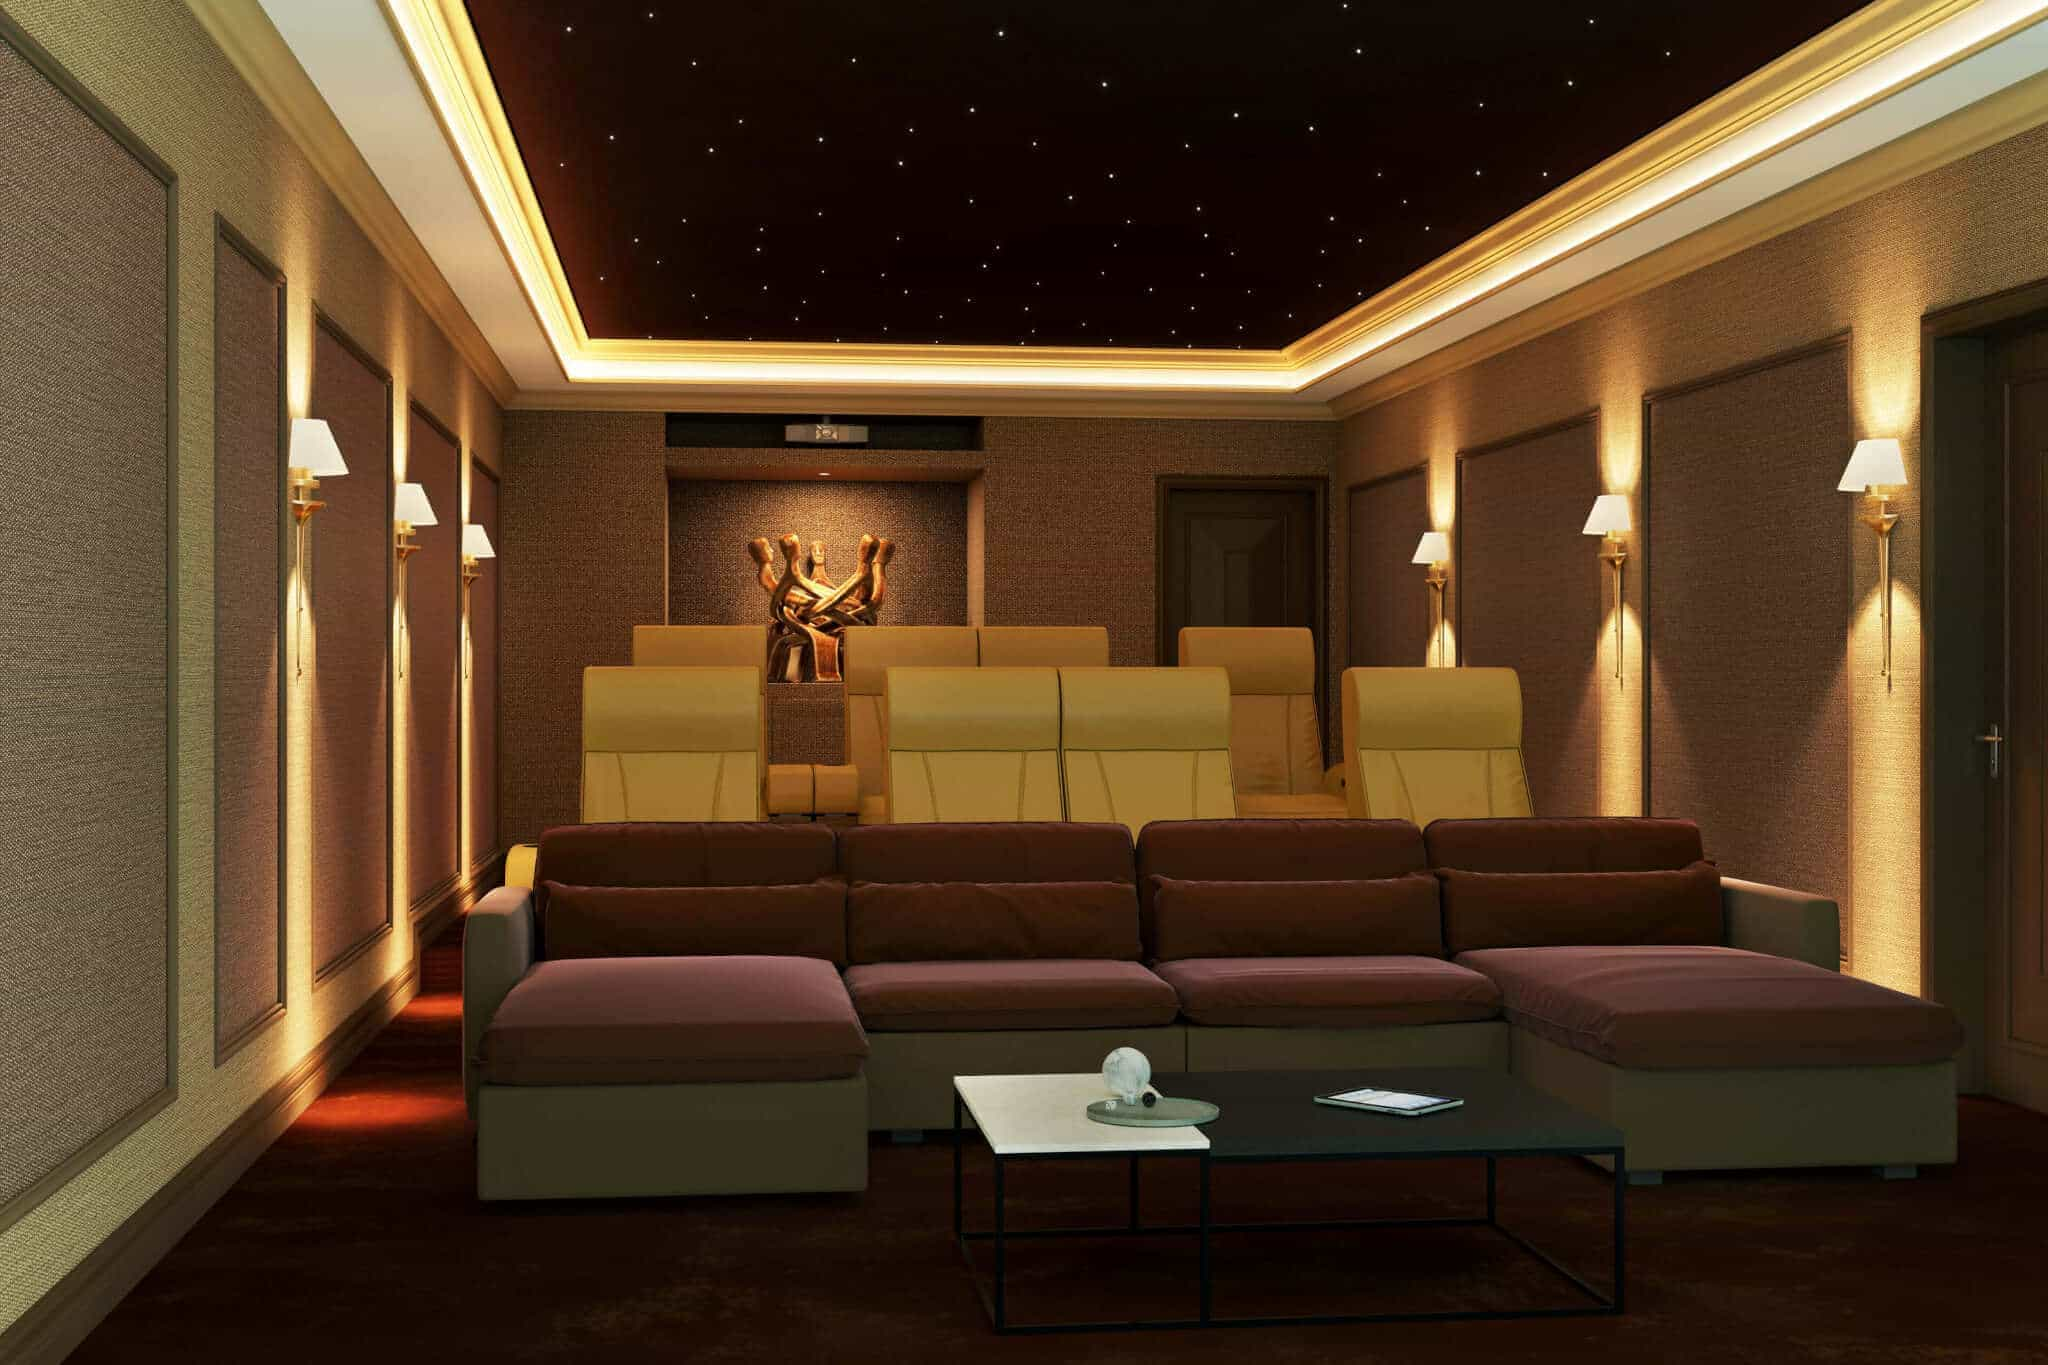 Home Cinema Room Design